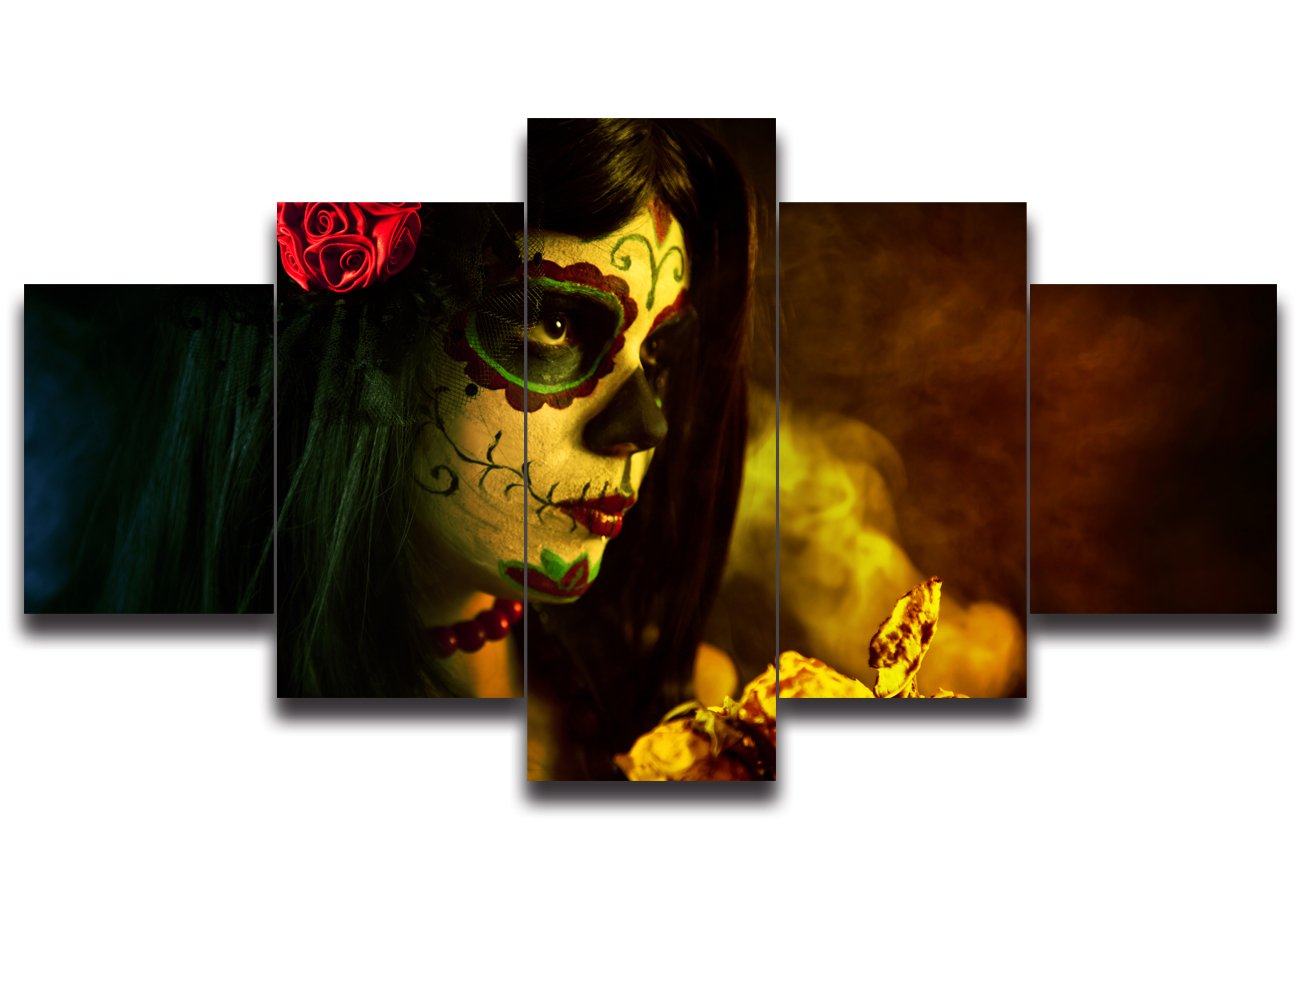 Day of the Dead Canvas Halloween Painting Sugar Skull Girl Face Wall Art 5 Piece Modern Posters and Prints Big Rose Pictures for Living Room,Home Decor Framed Stretched Ready to Hang(60''Wx40''H)